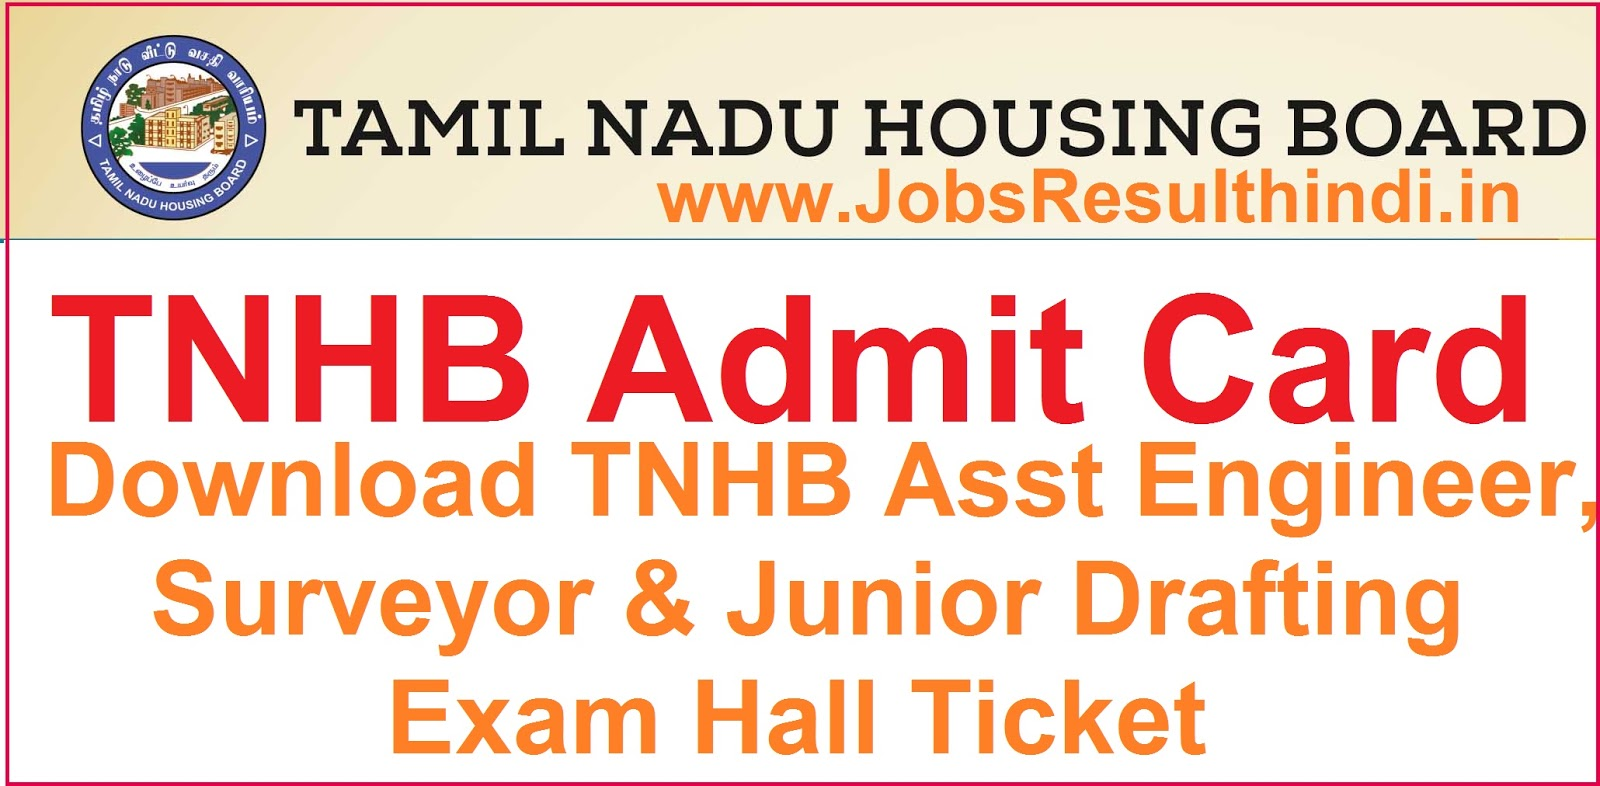 tnhb admit card 2017 download asst engineer, surveyor & junior